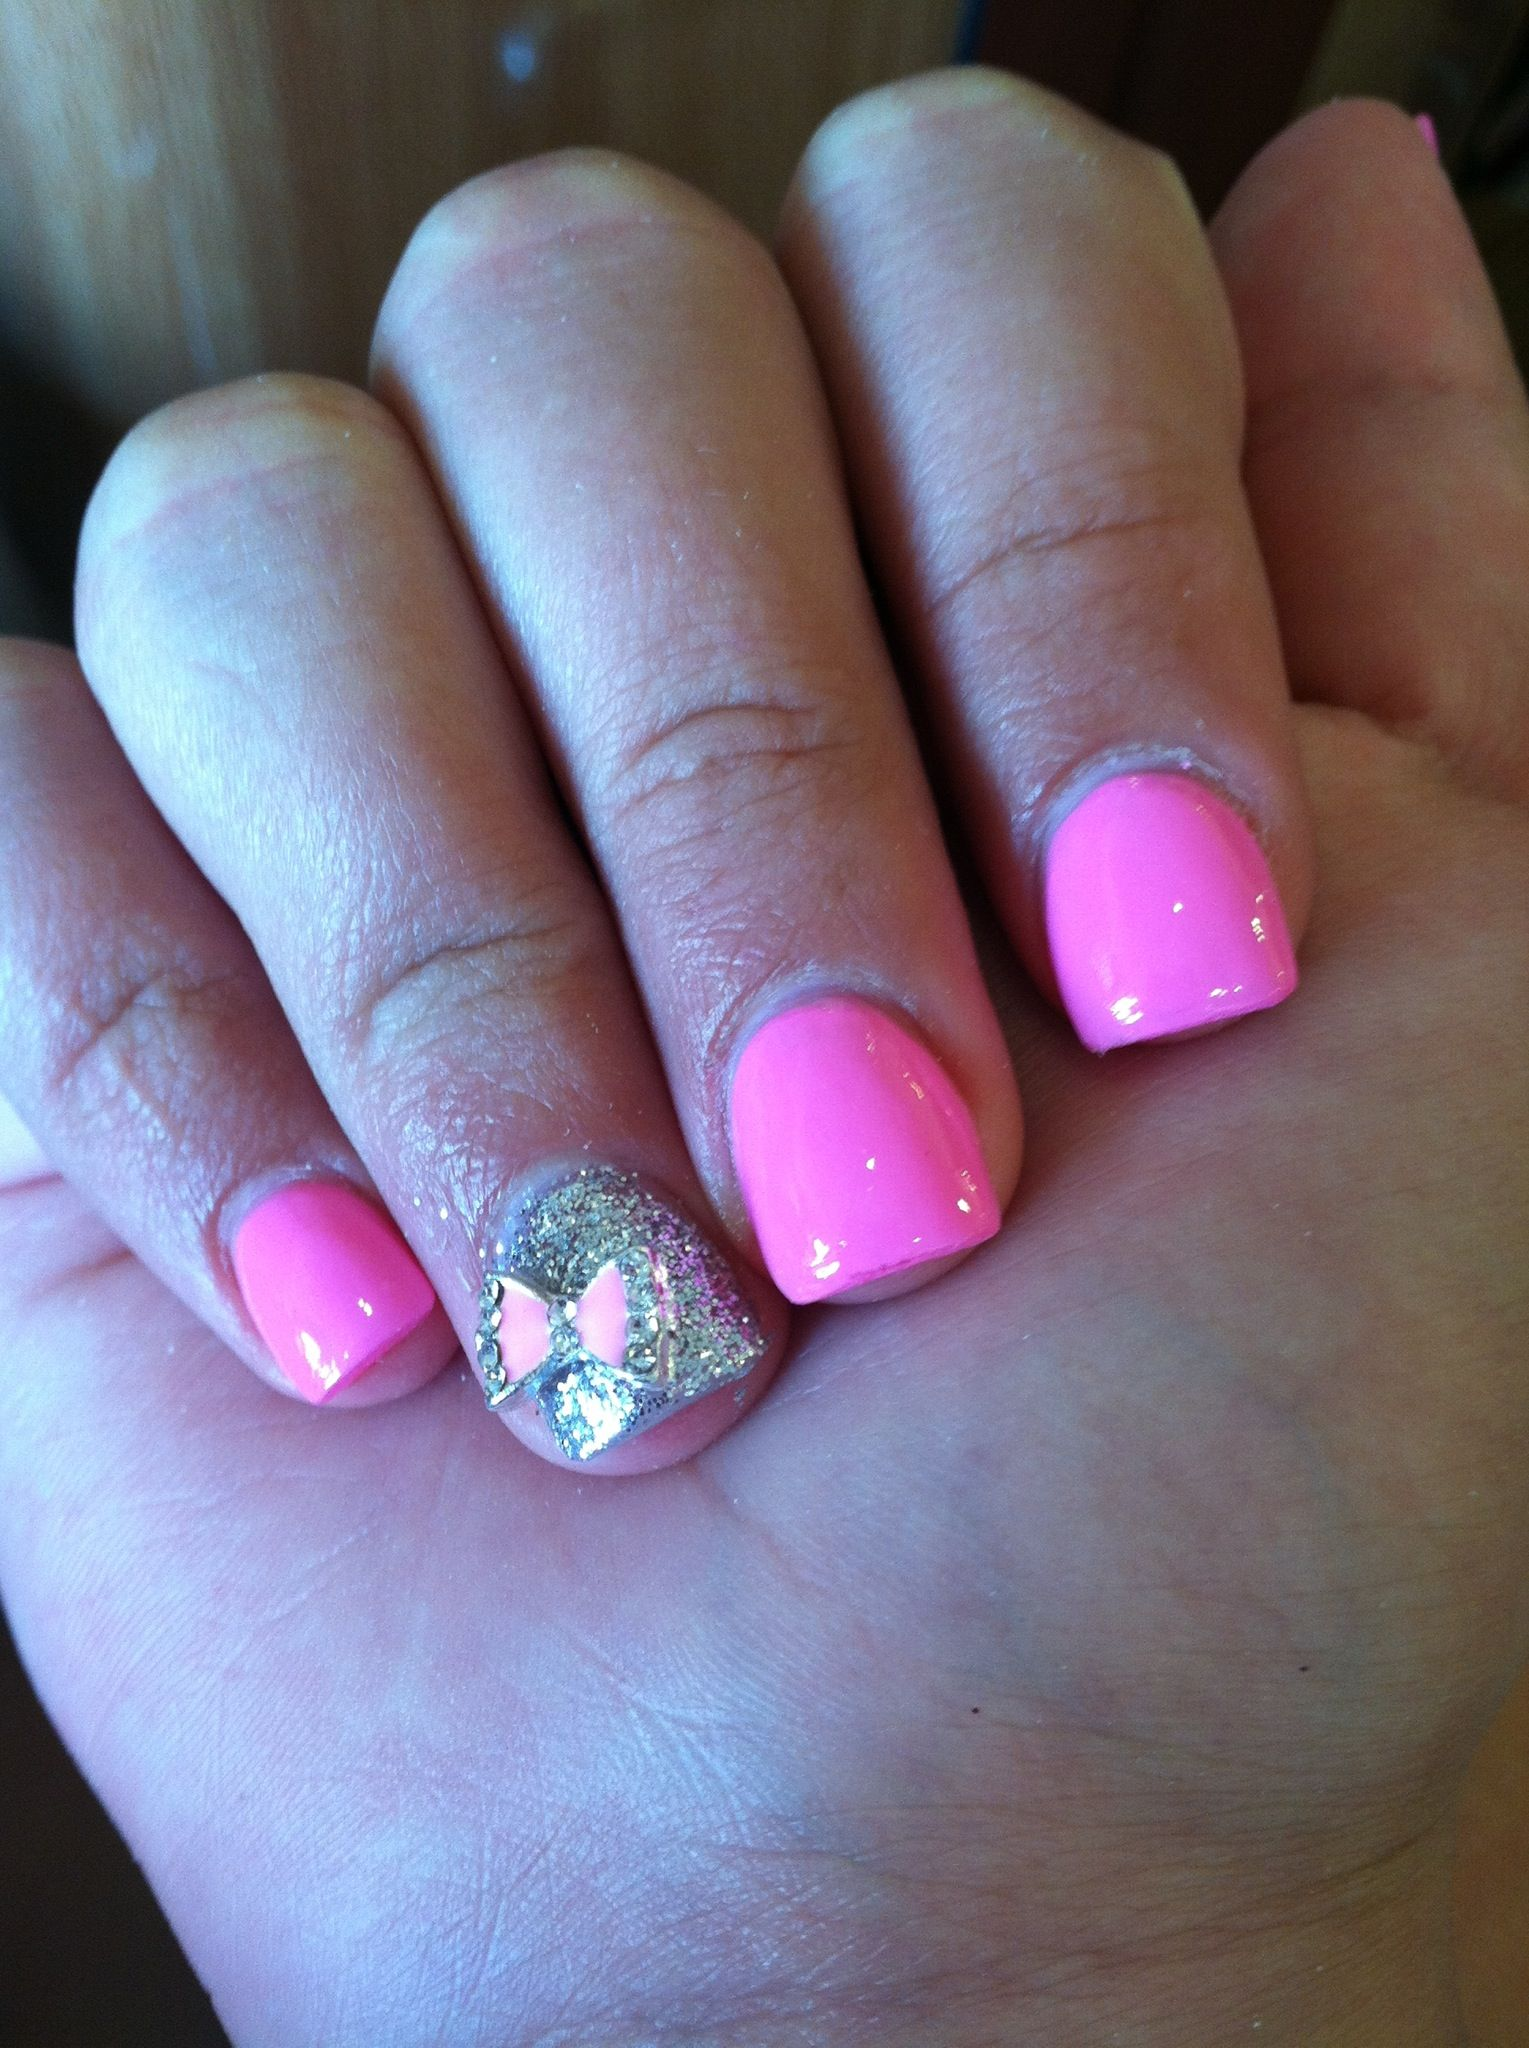 pink acrylic nails • sparkle silver nail • pink diamond-edge bow